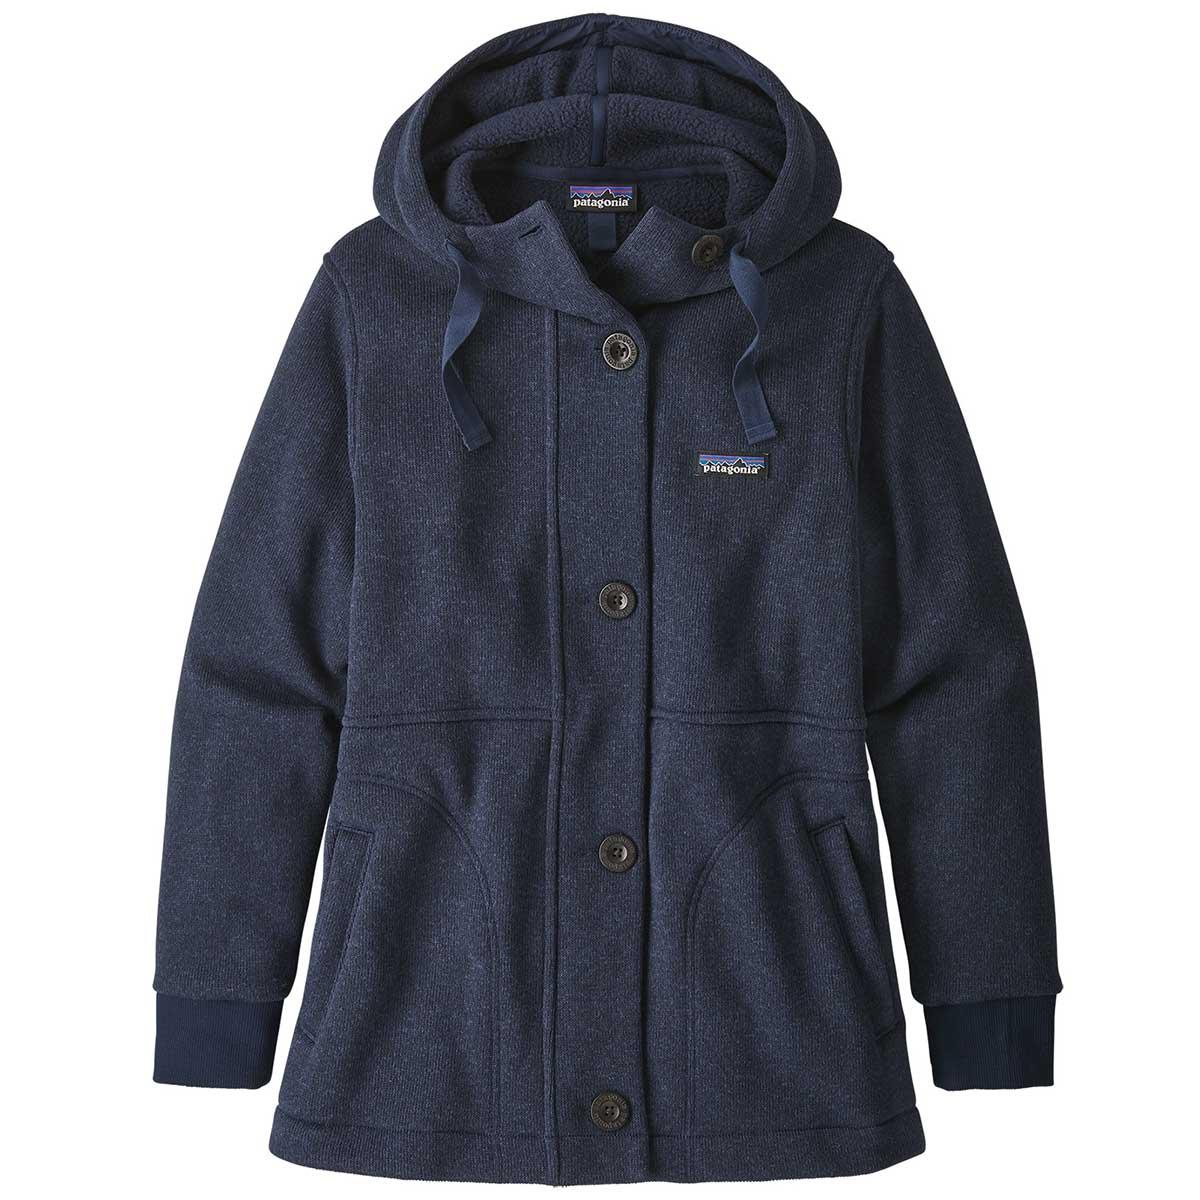 Patagonia women's Better Sweater Coat in Neo Navy front view